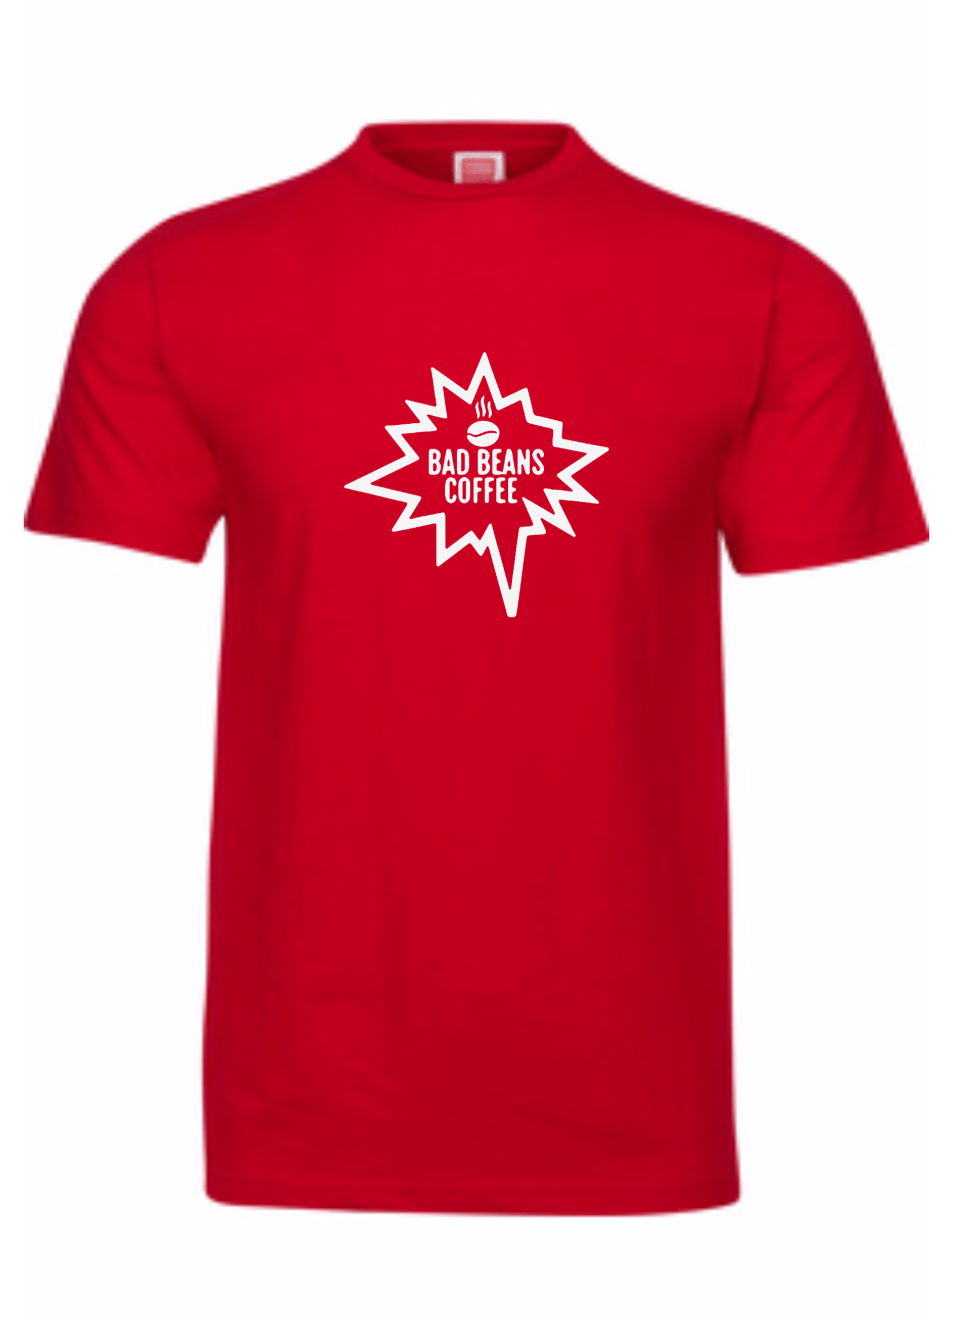 Bad Beans Tee Red/White